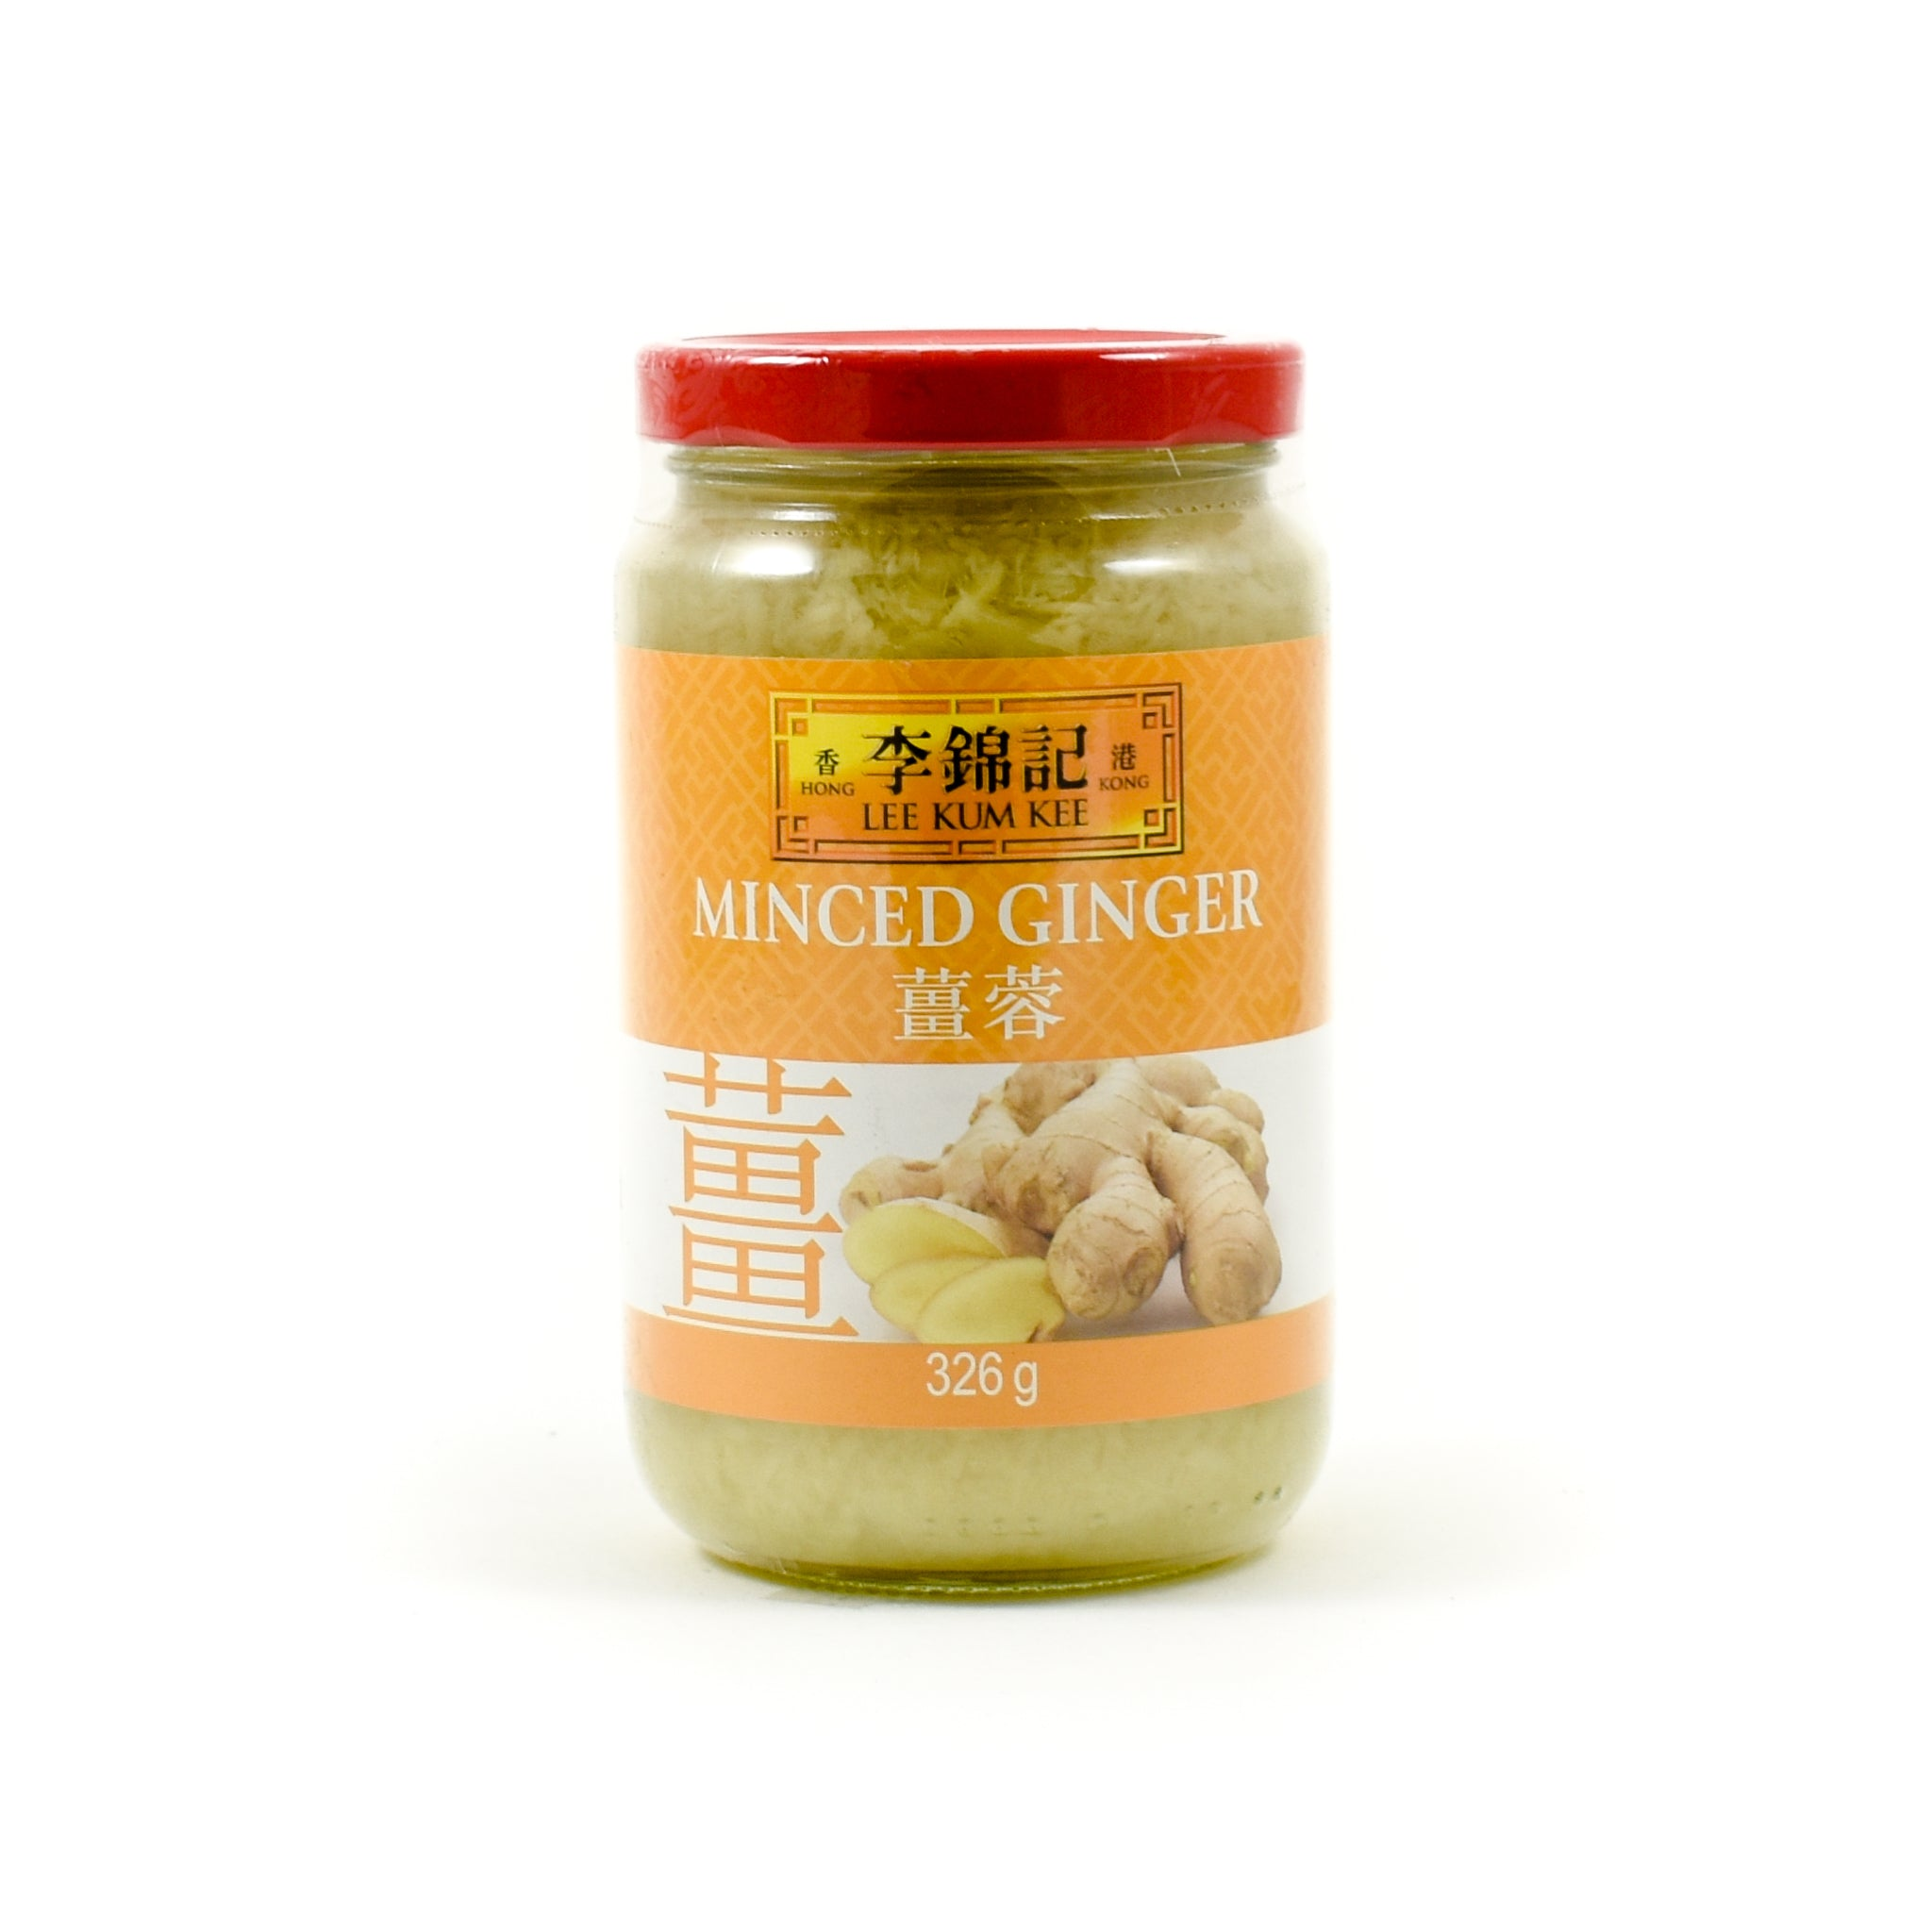 Lee Kum Kee Minced Ginger 326g Ingredients Sauces & Condiments Asian Sauces & Condiments Chinese Food